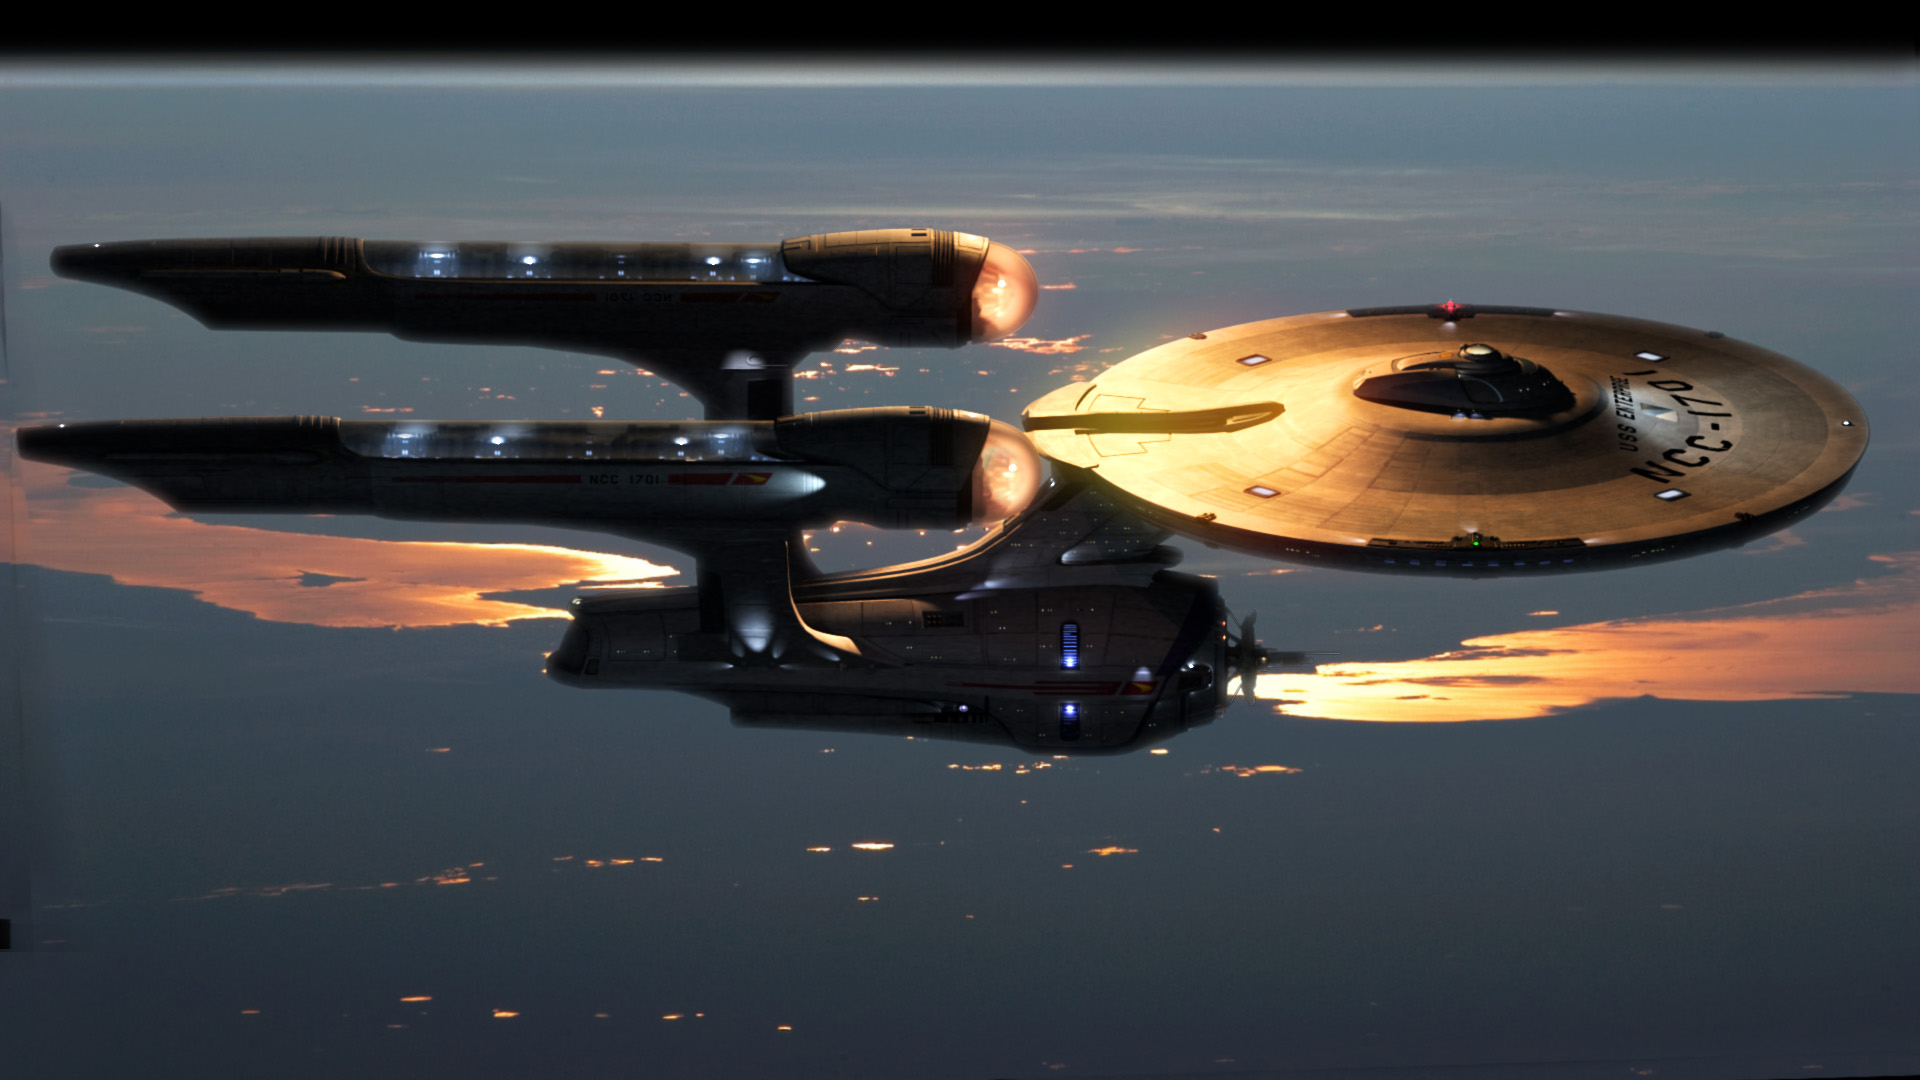 My Starship Enterprise By GabeKoerner